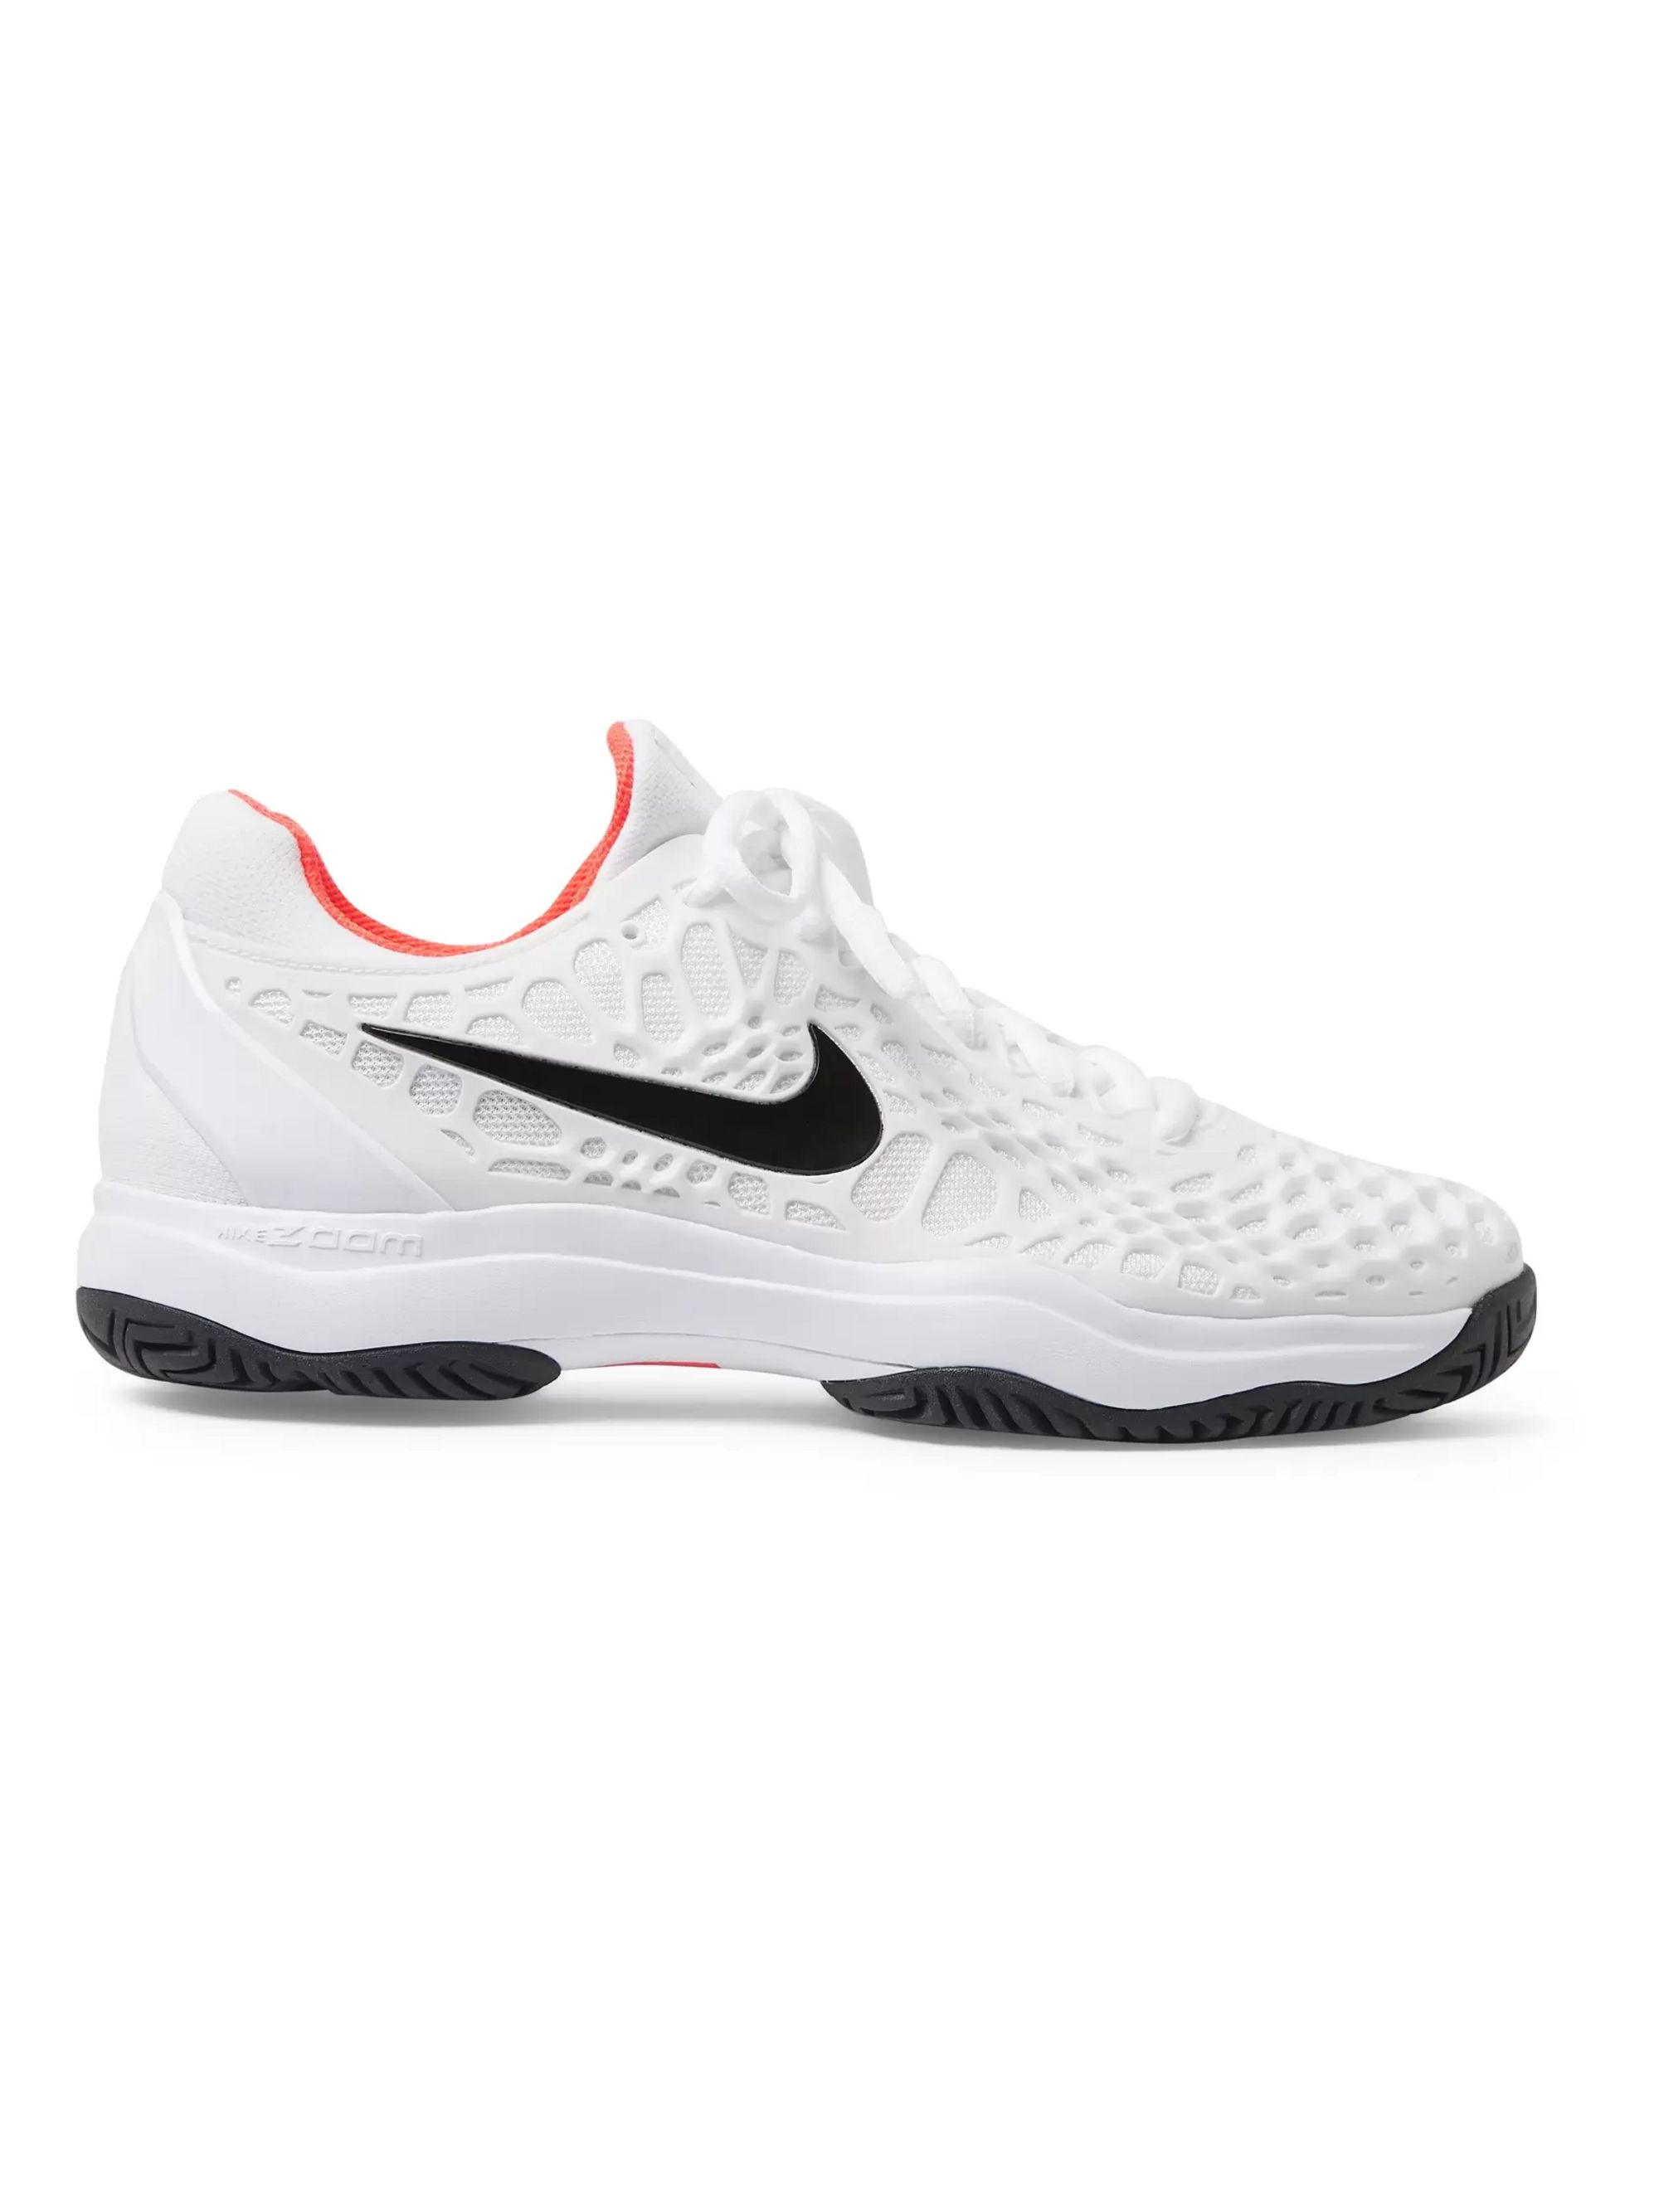 Nike Tennis Air Zoom Cage 3 Rubber And Mesh Tennis Sneakers